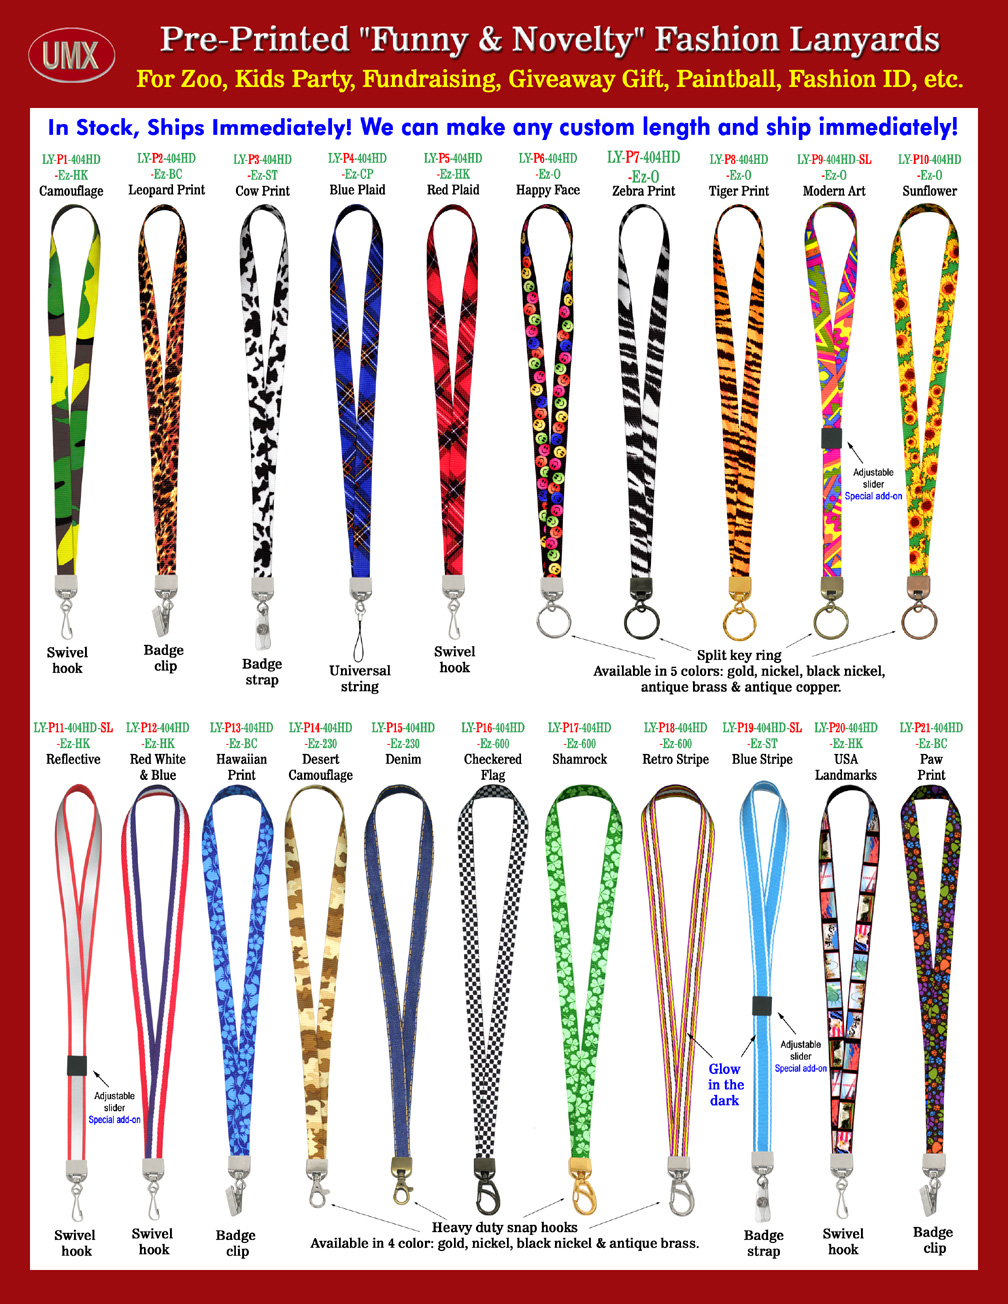 Novelty Gift Catalogs >> Funny and Novelty Lanyards For ID Name Badge Holders, Fundraising and Promotional Giveaway Gifts